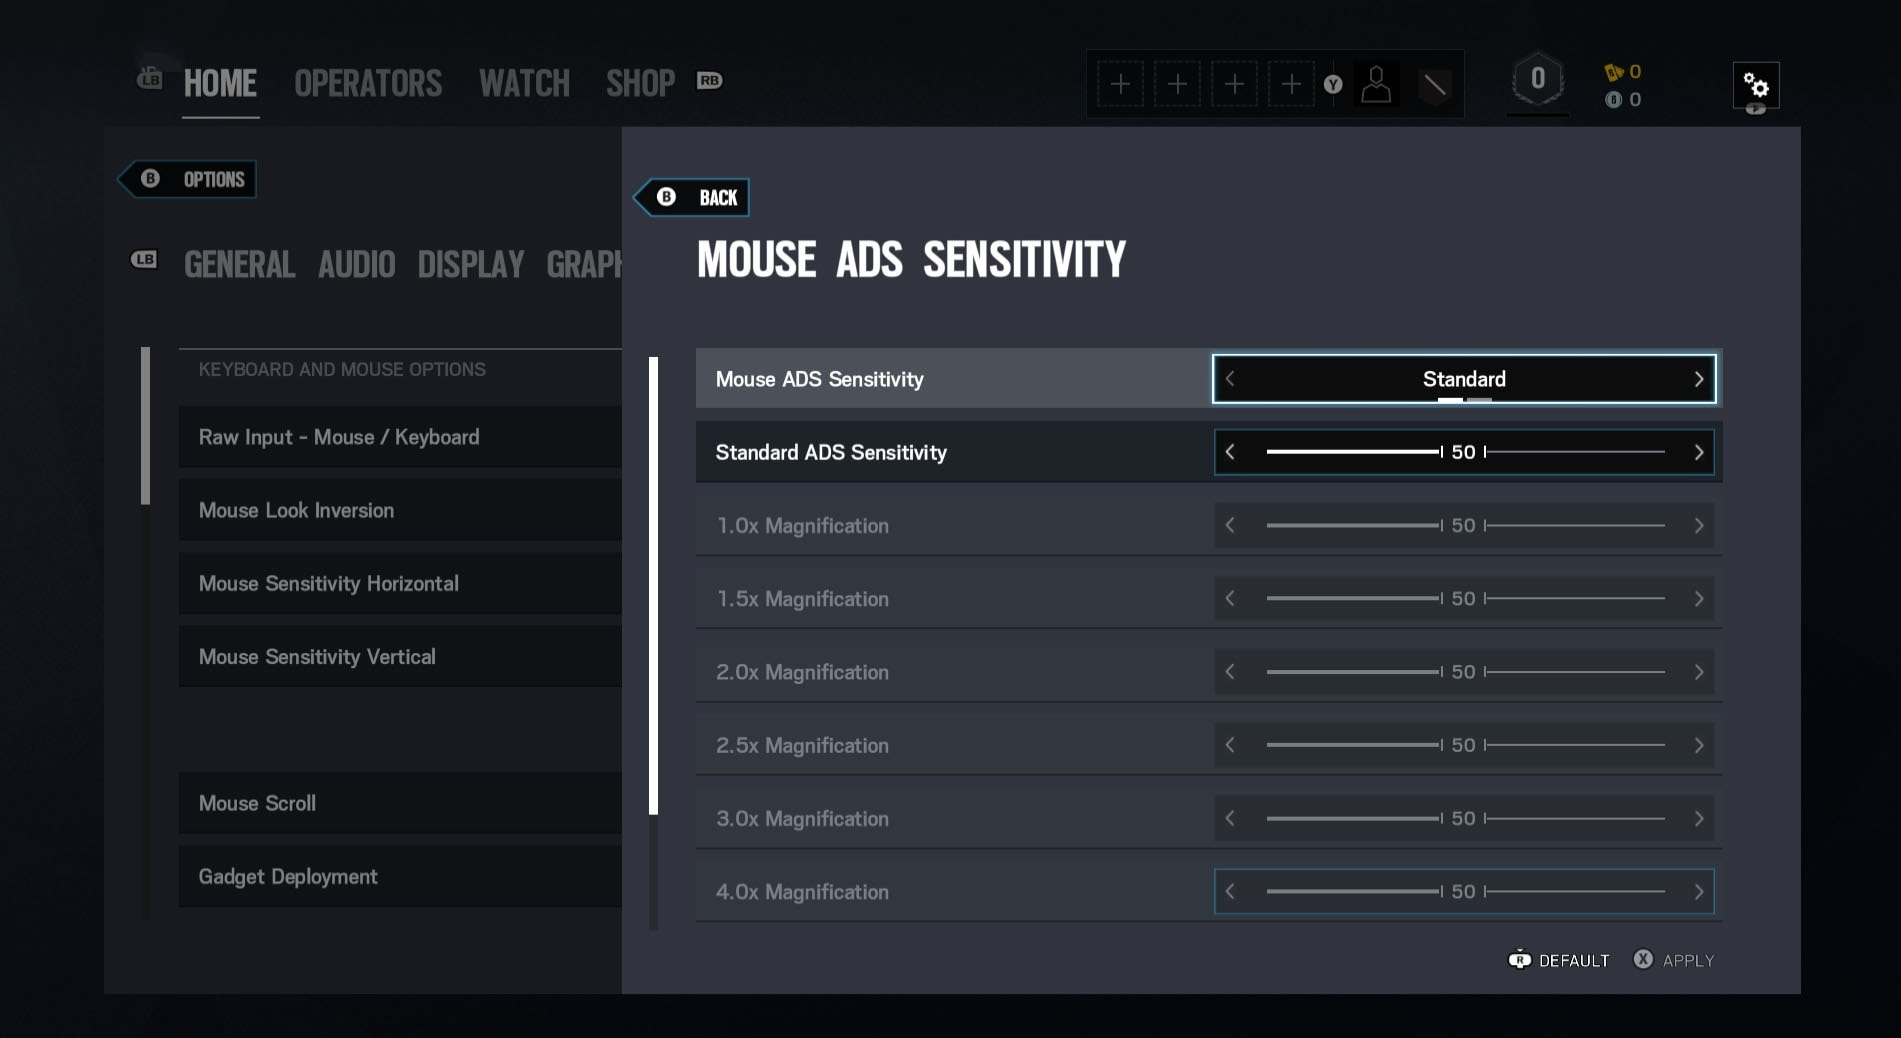 [R6S] Y5S3 ADS Sensitivity Standard